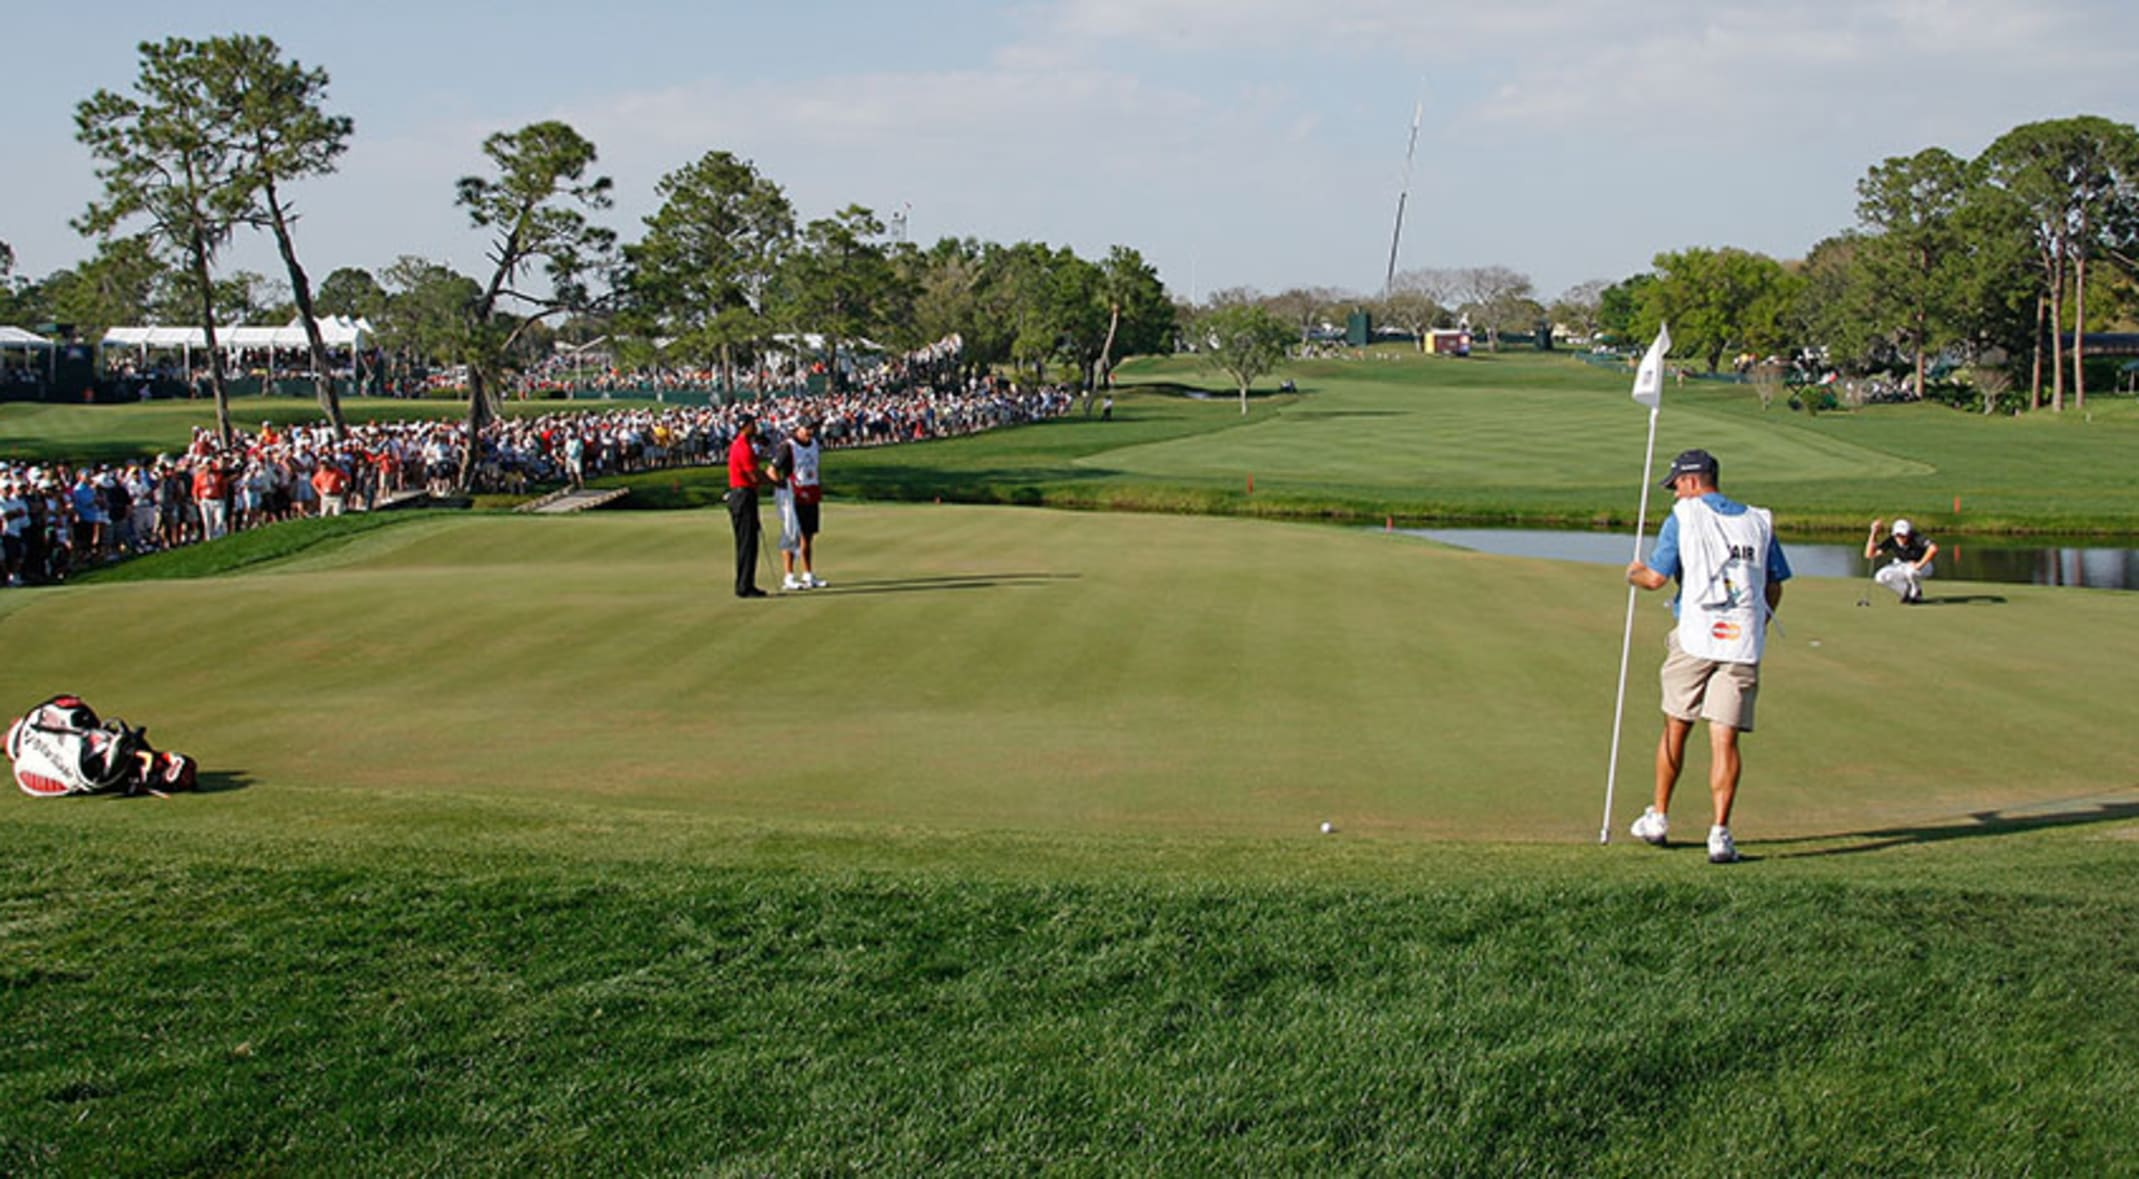 Some changes to No. 16 have added more birdies, but the hole still creates